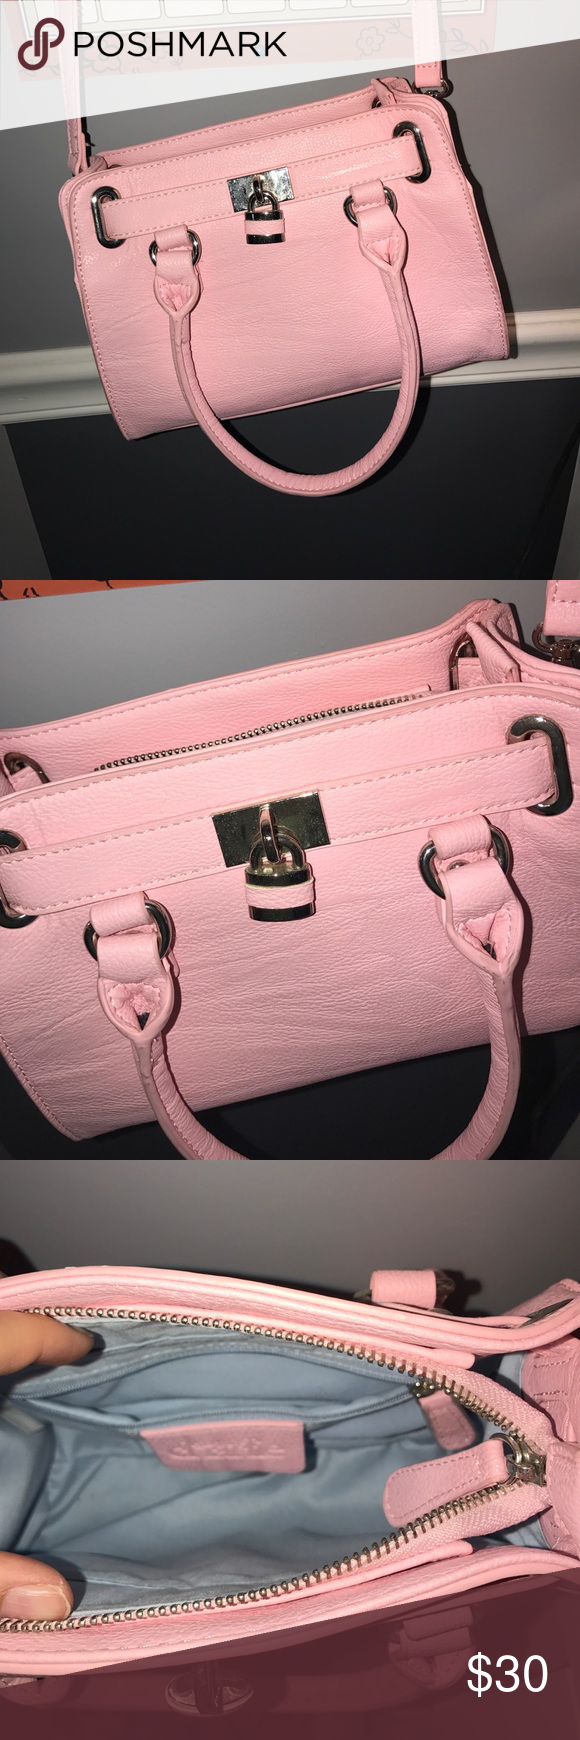 Crossbody pink purse from Charming Charlie's Pink crossbody purse from Charming Charlie's. Comes with the crossbody strap that can also unhook so you can use it as a regular purse. Used ONCE ! Charming Charlie Bags Crossbody Bags